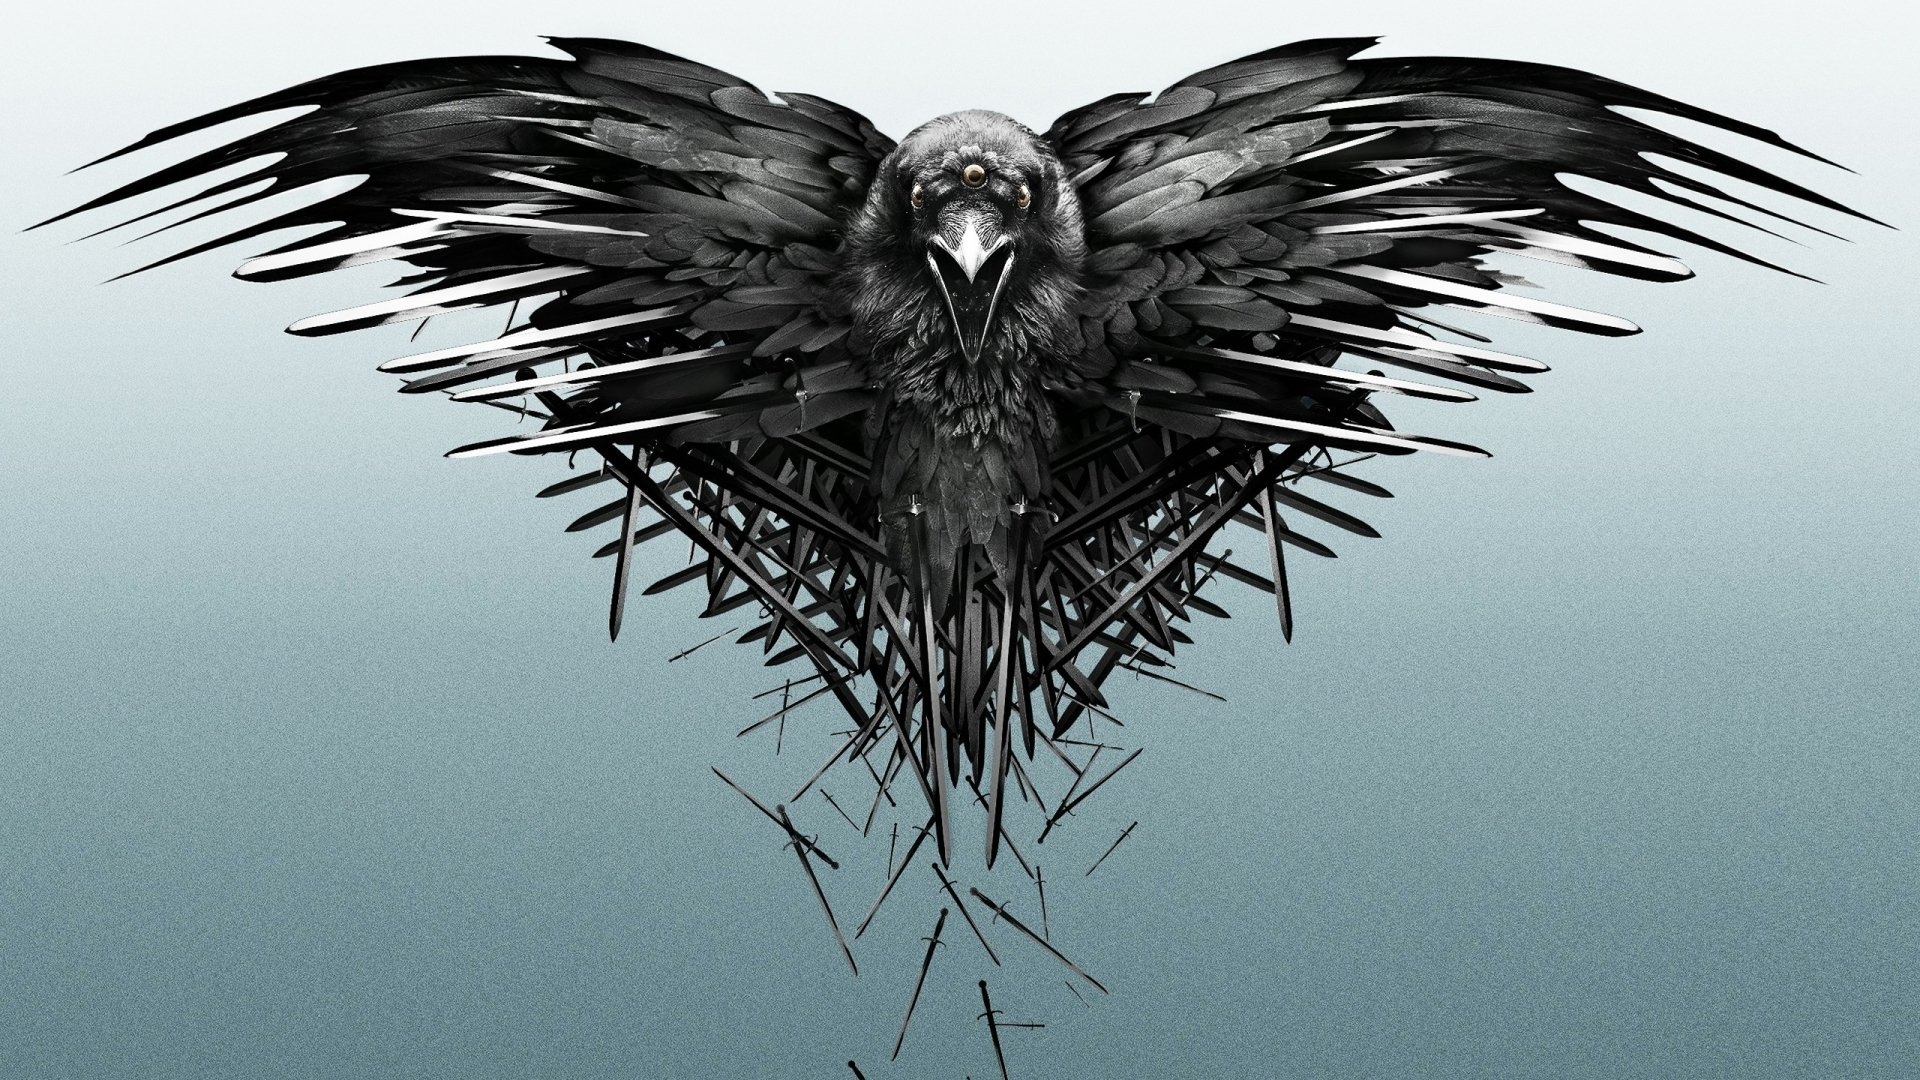 TV Show - Game Of Thrones  Crow Raven Bird Wallpaper